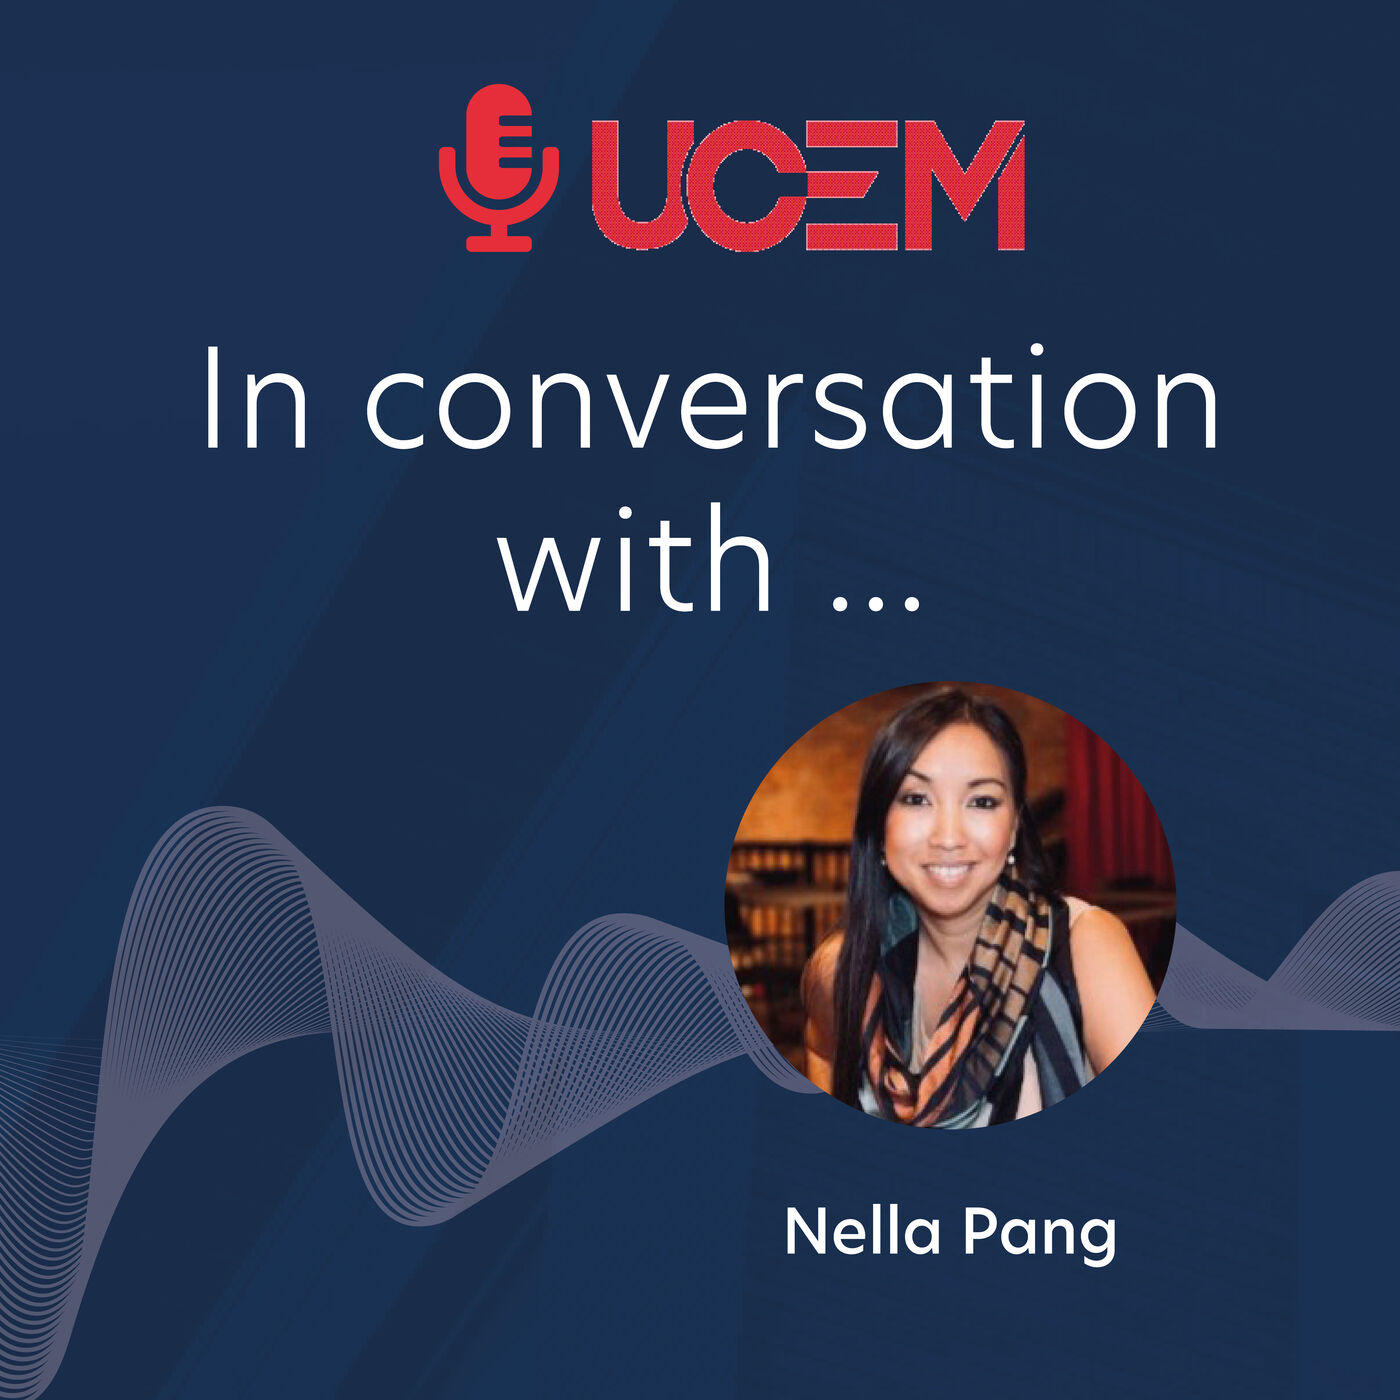 UCEM in conversation with... Nella Pang - Episode 8